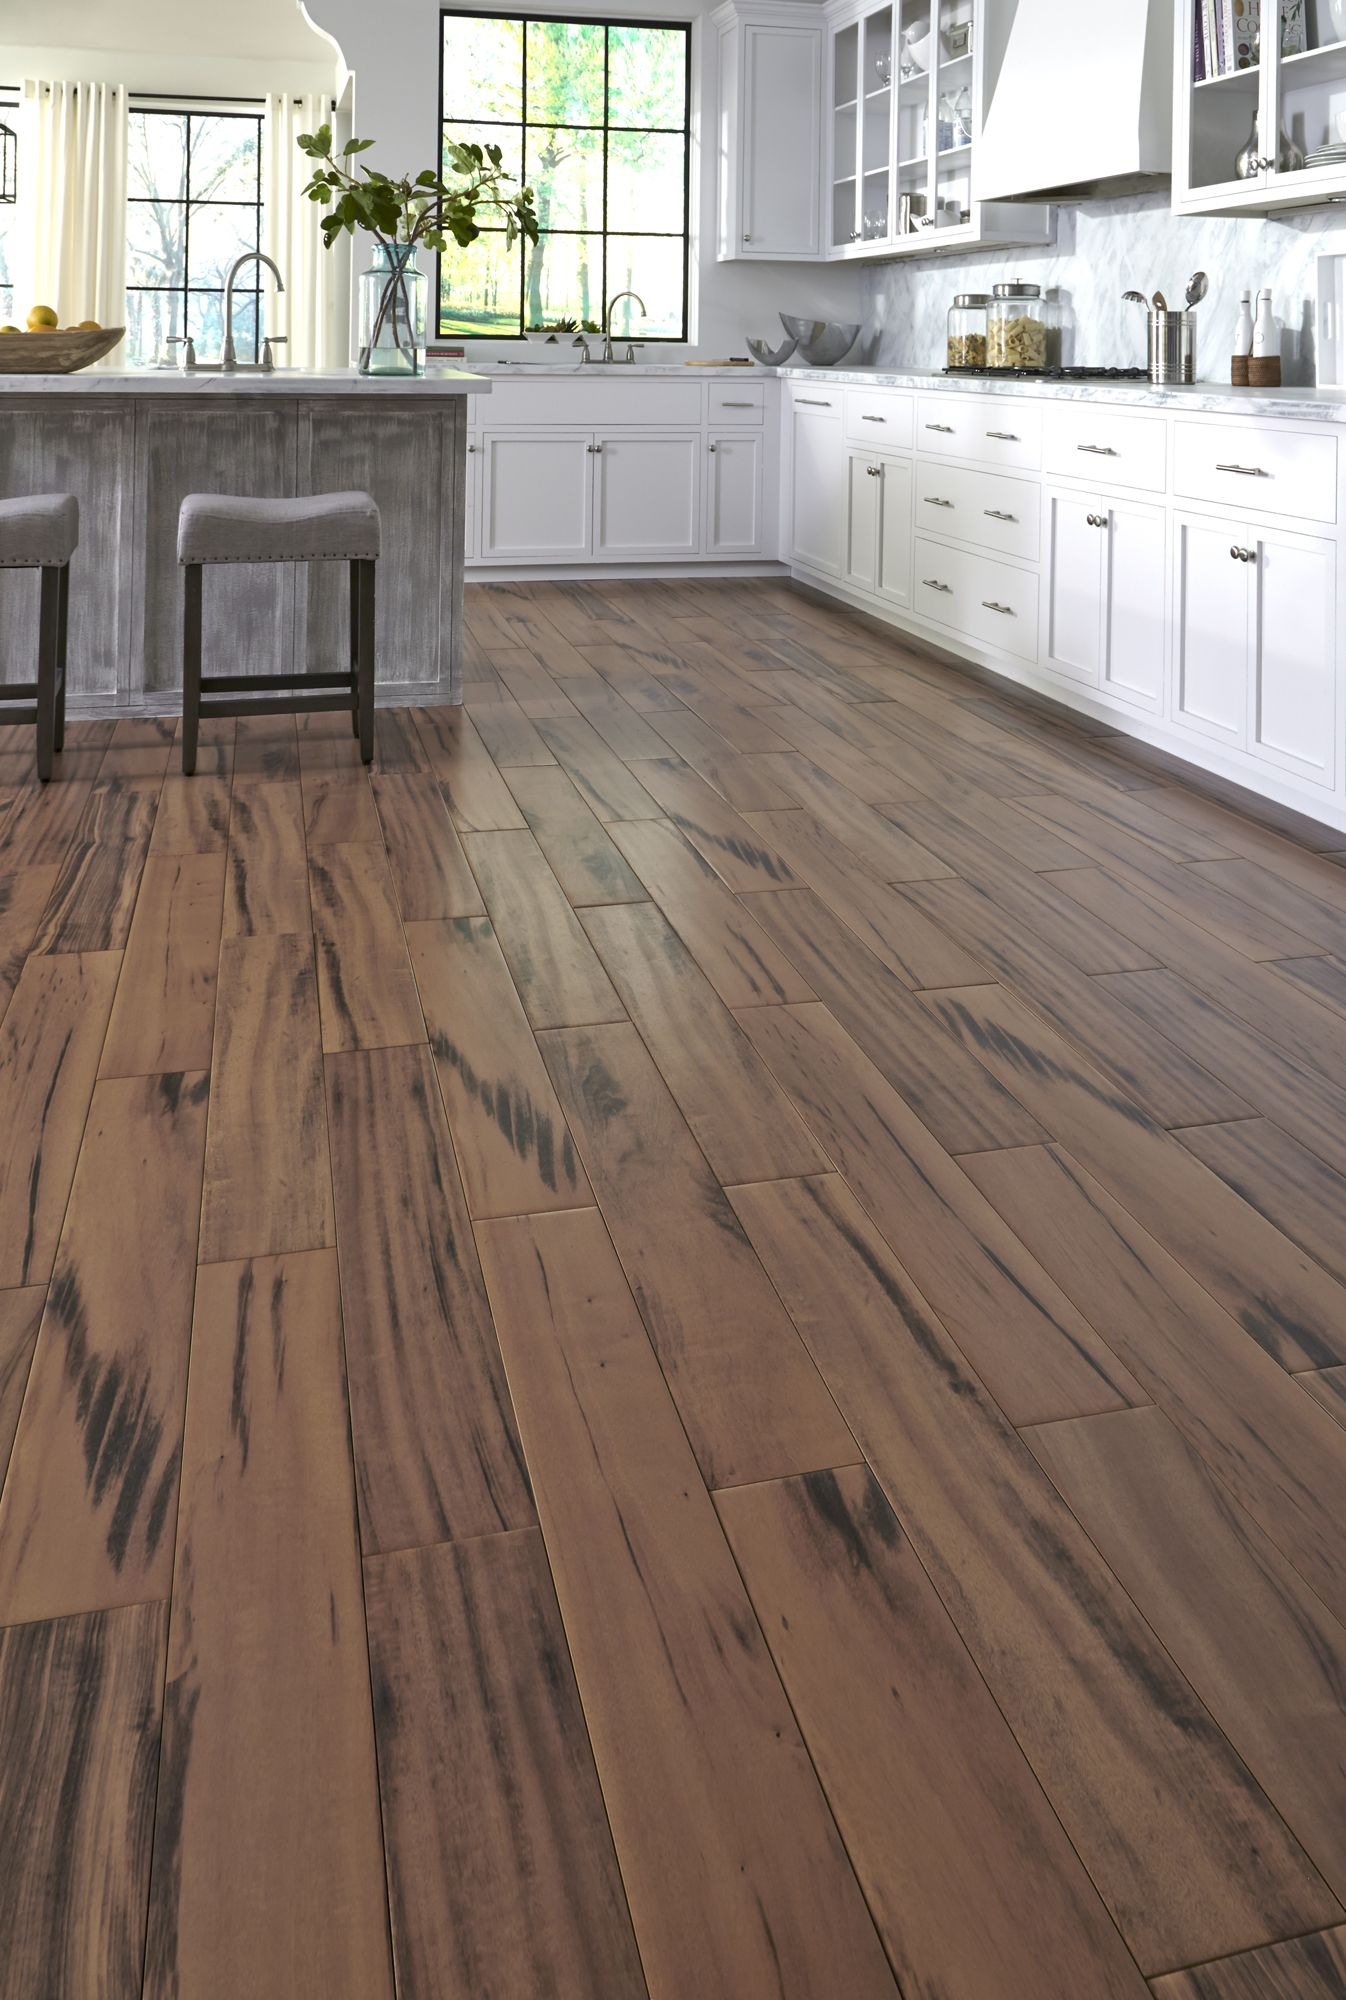 Get The Look Of Wood Flooring With The Application Of Tile